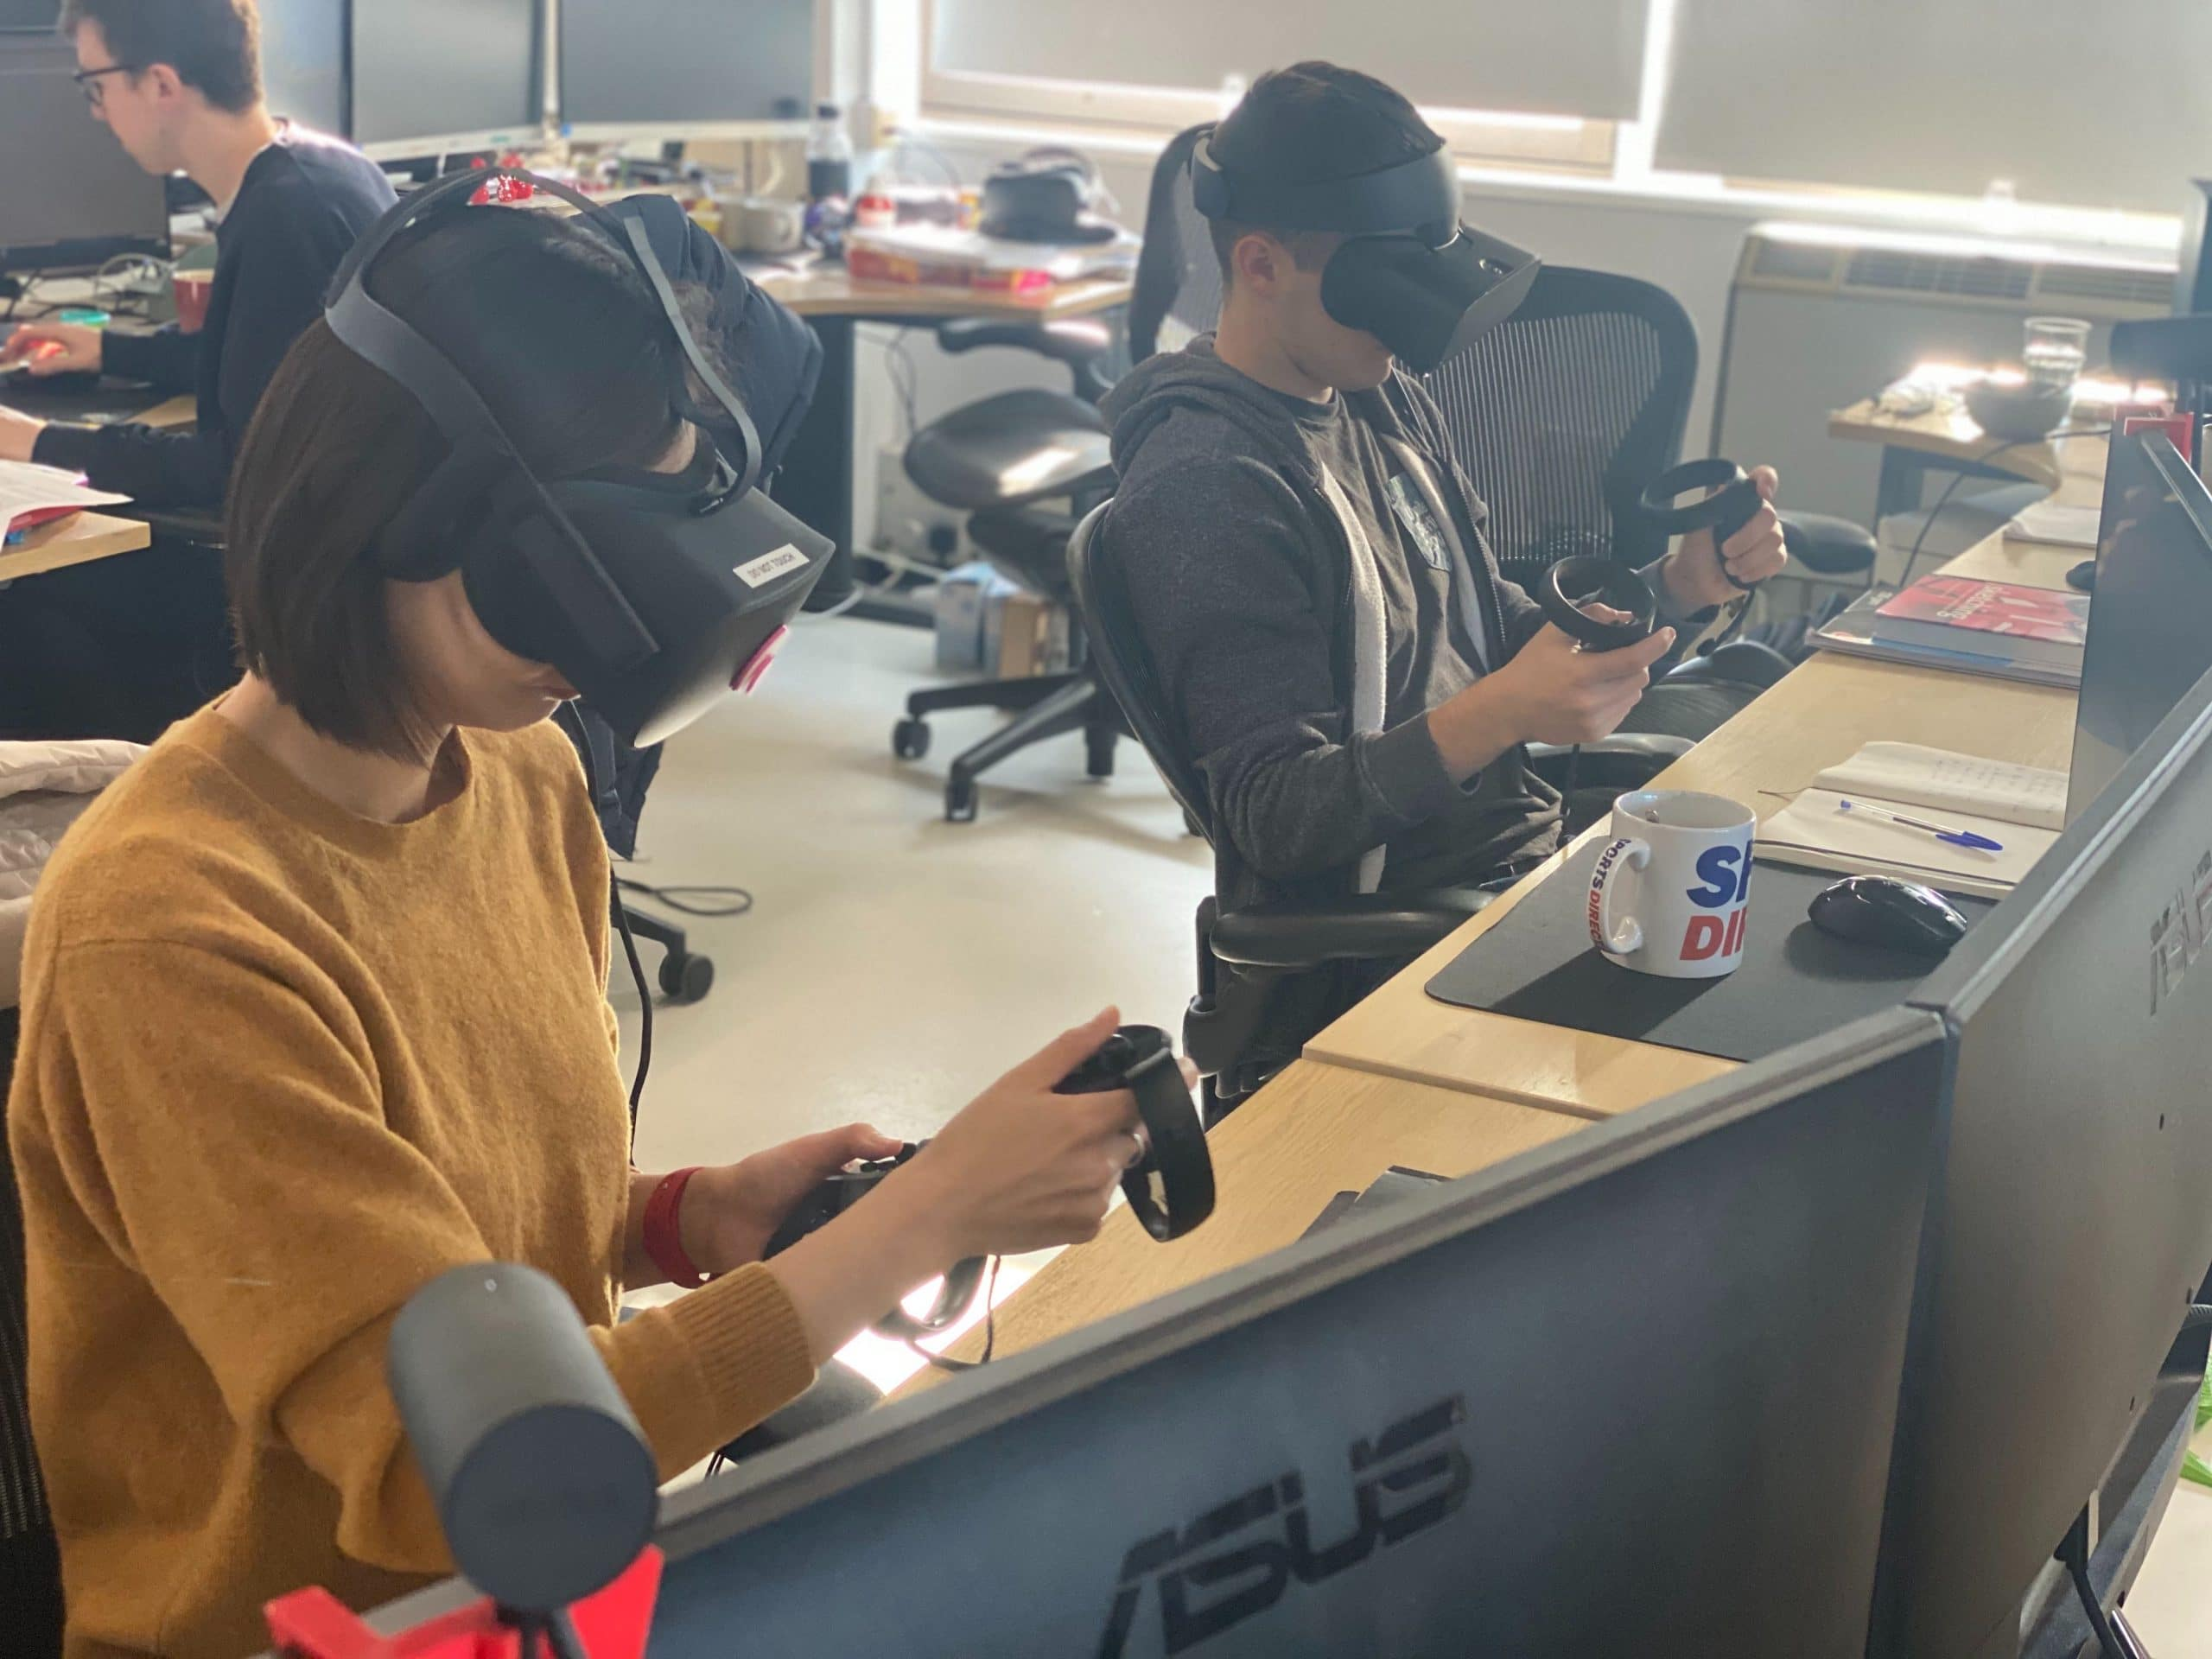 Why aren't we using VR in the office? Come on guys, it's 2020.